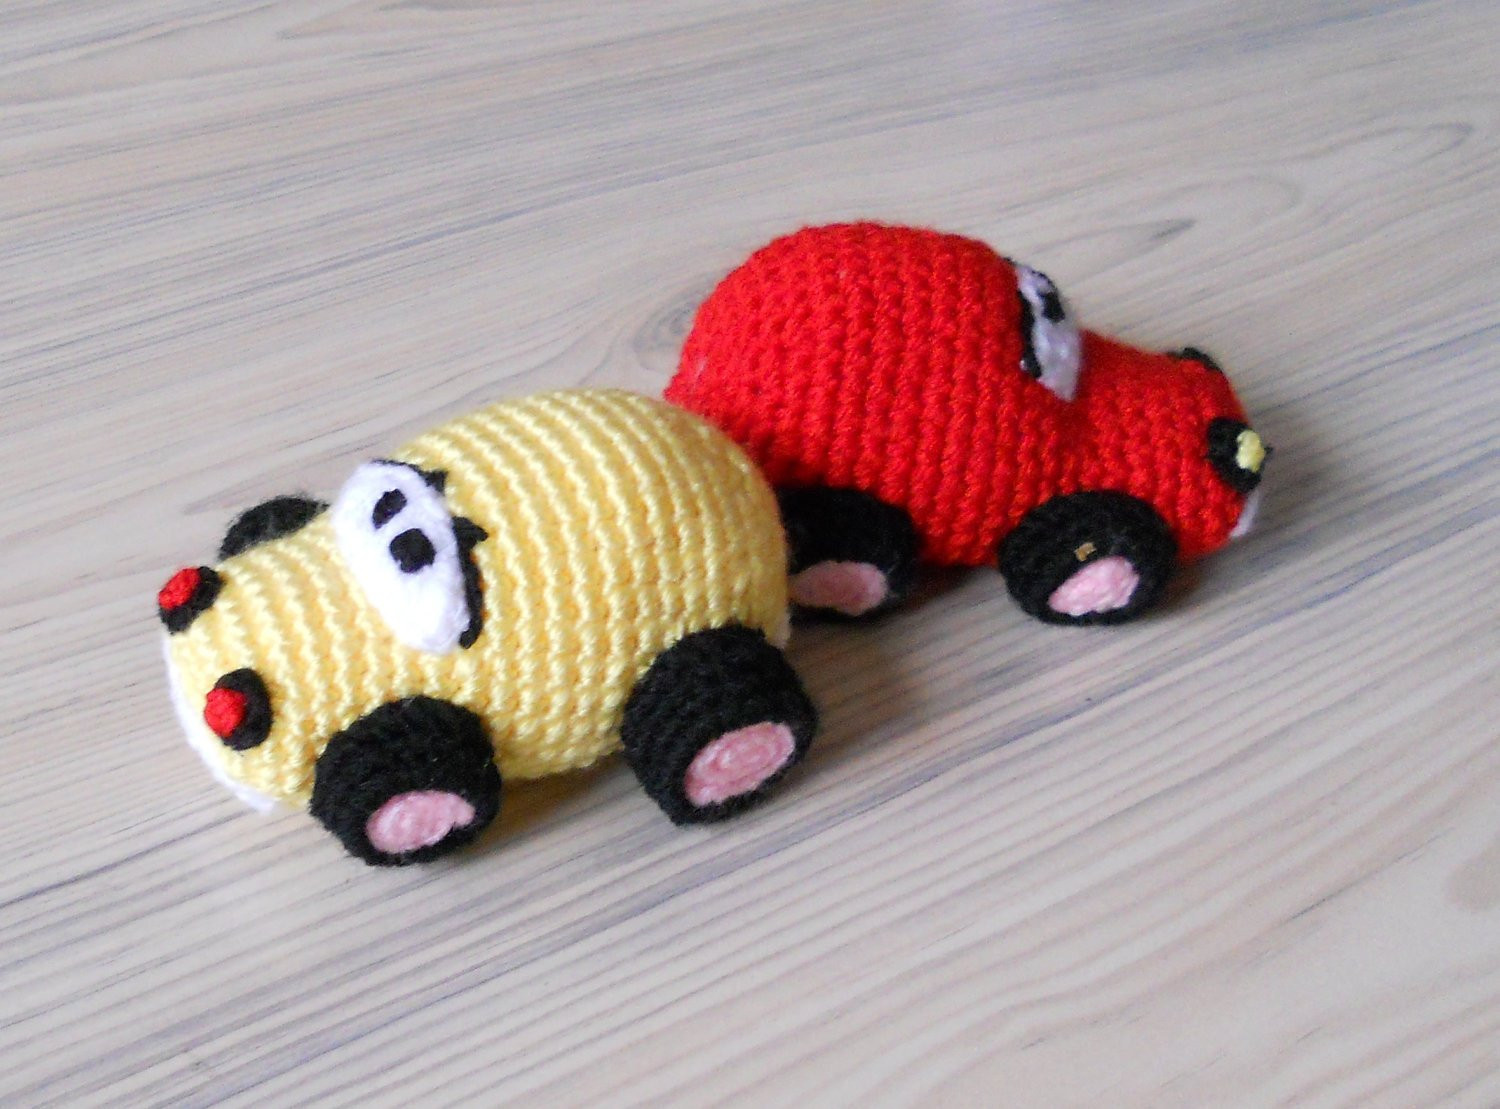 Crochet Baby toys Awesome 2 Crochet Car Baby toys Red Car Yellow Car Baby toys Of Great 46 Photos Crochet Baby toys